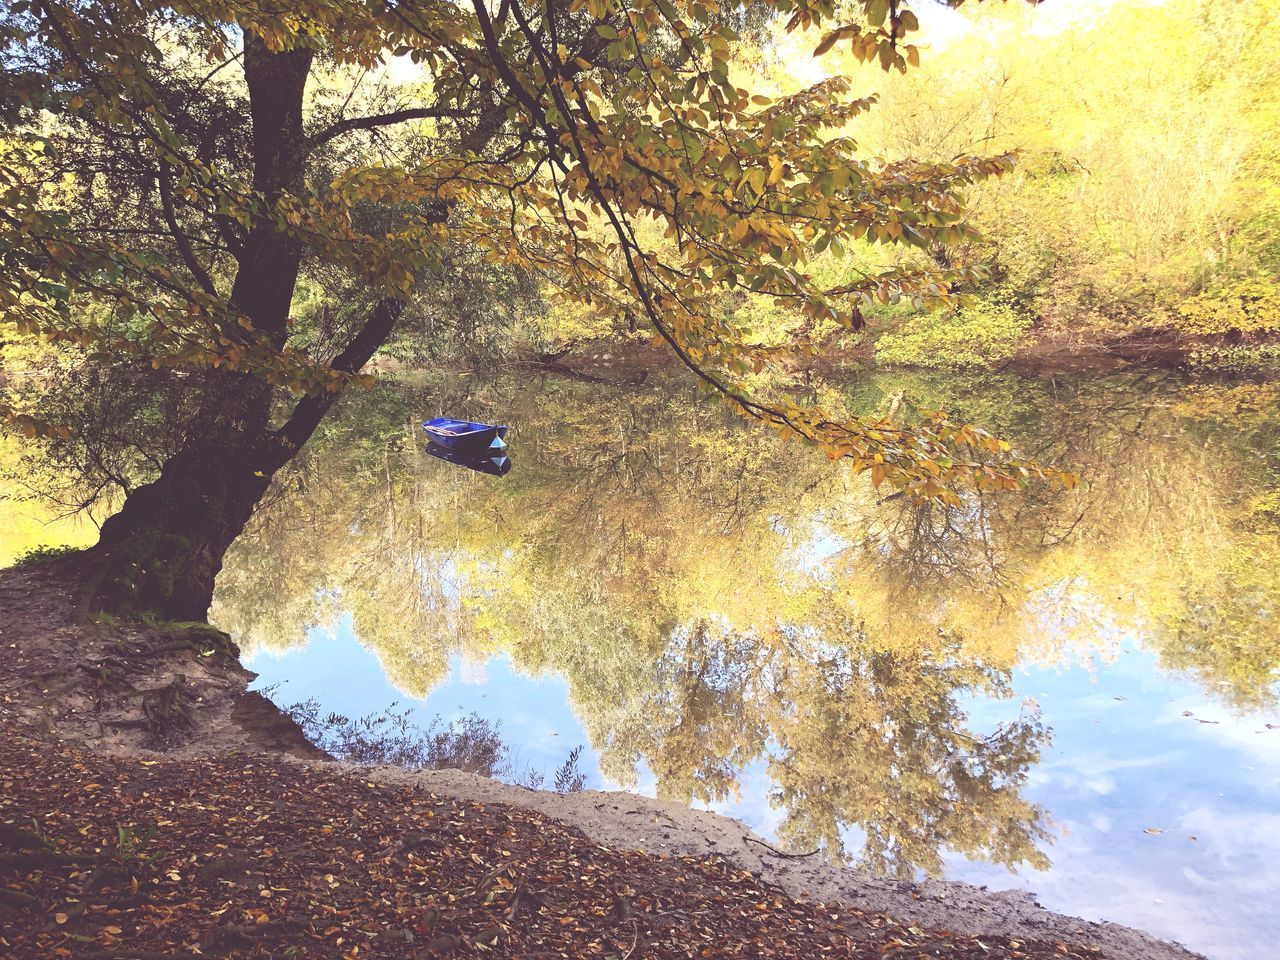 tree, plant, water, nature, beauty in nature, day, tranquility, tranquil scene, transportation, growth, land, scenics - nature, forest, lake, mode of transportation, outdoors, non-urban scene, reflection, no people